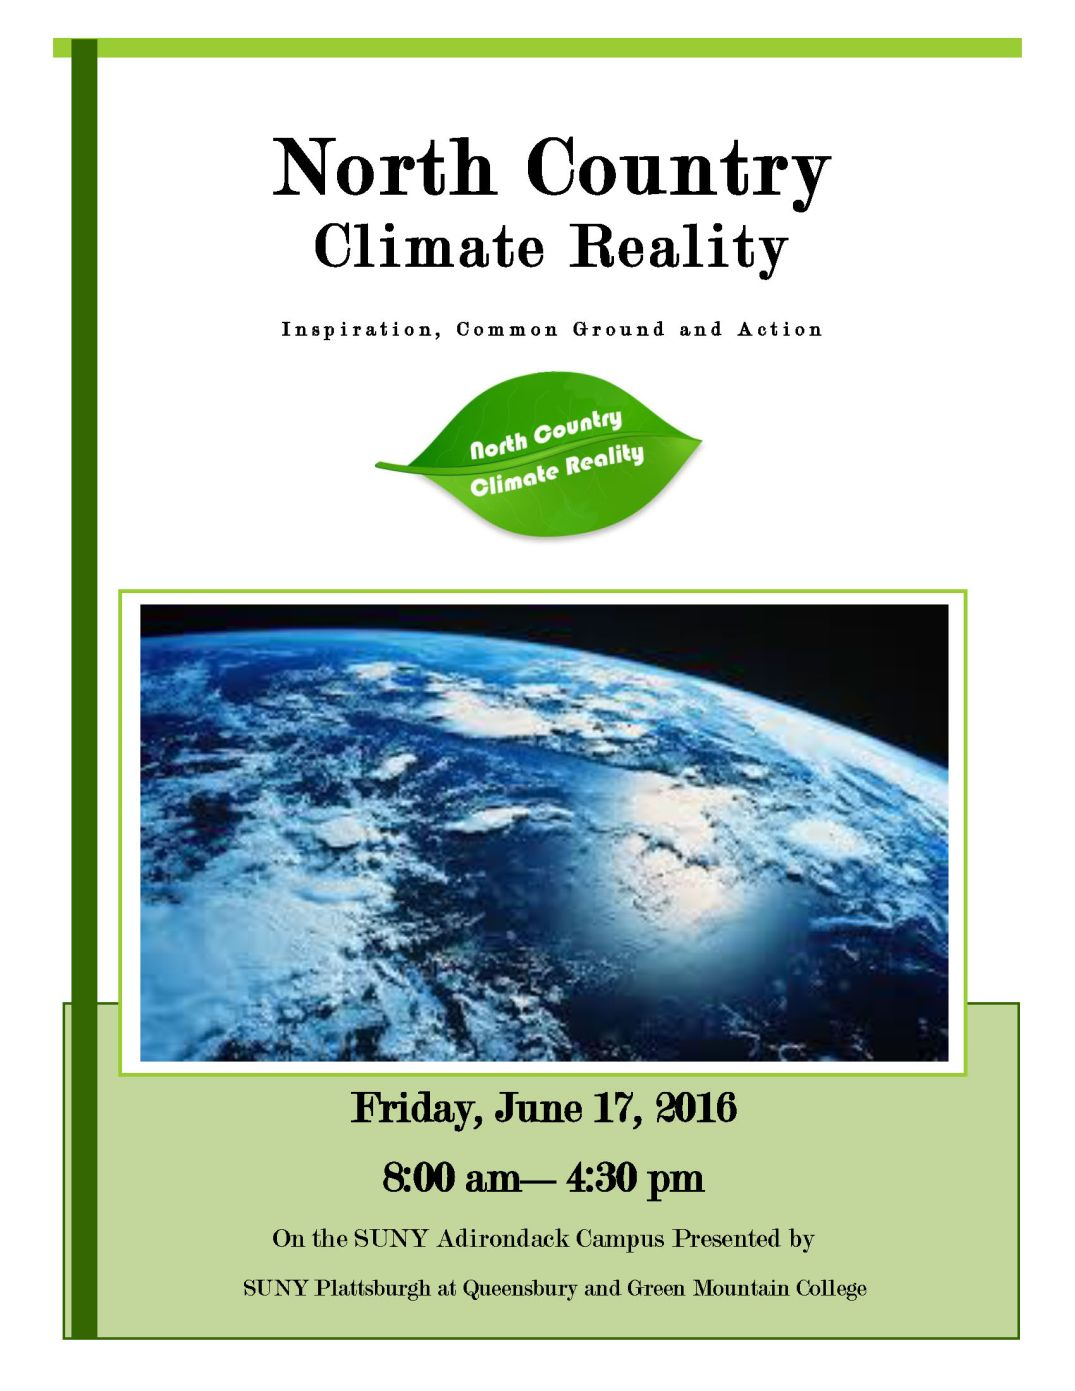 NorthCountryClimateRealityConference2016_Page_01